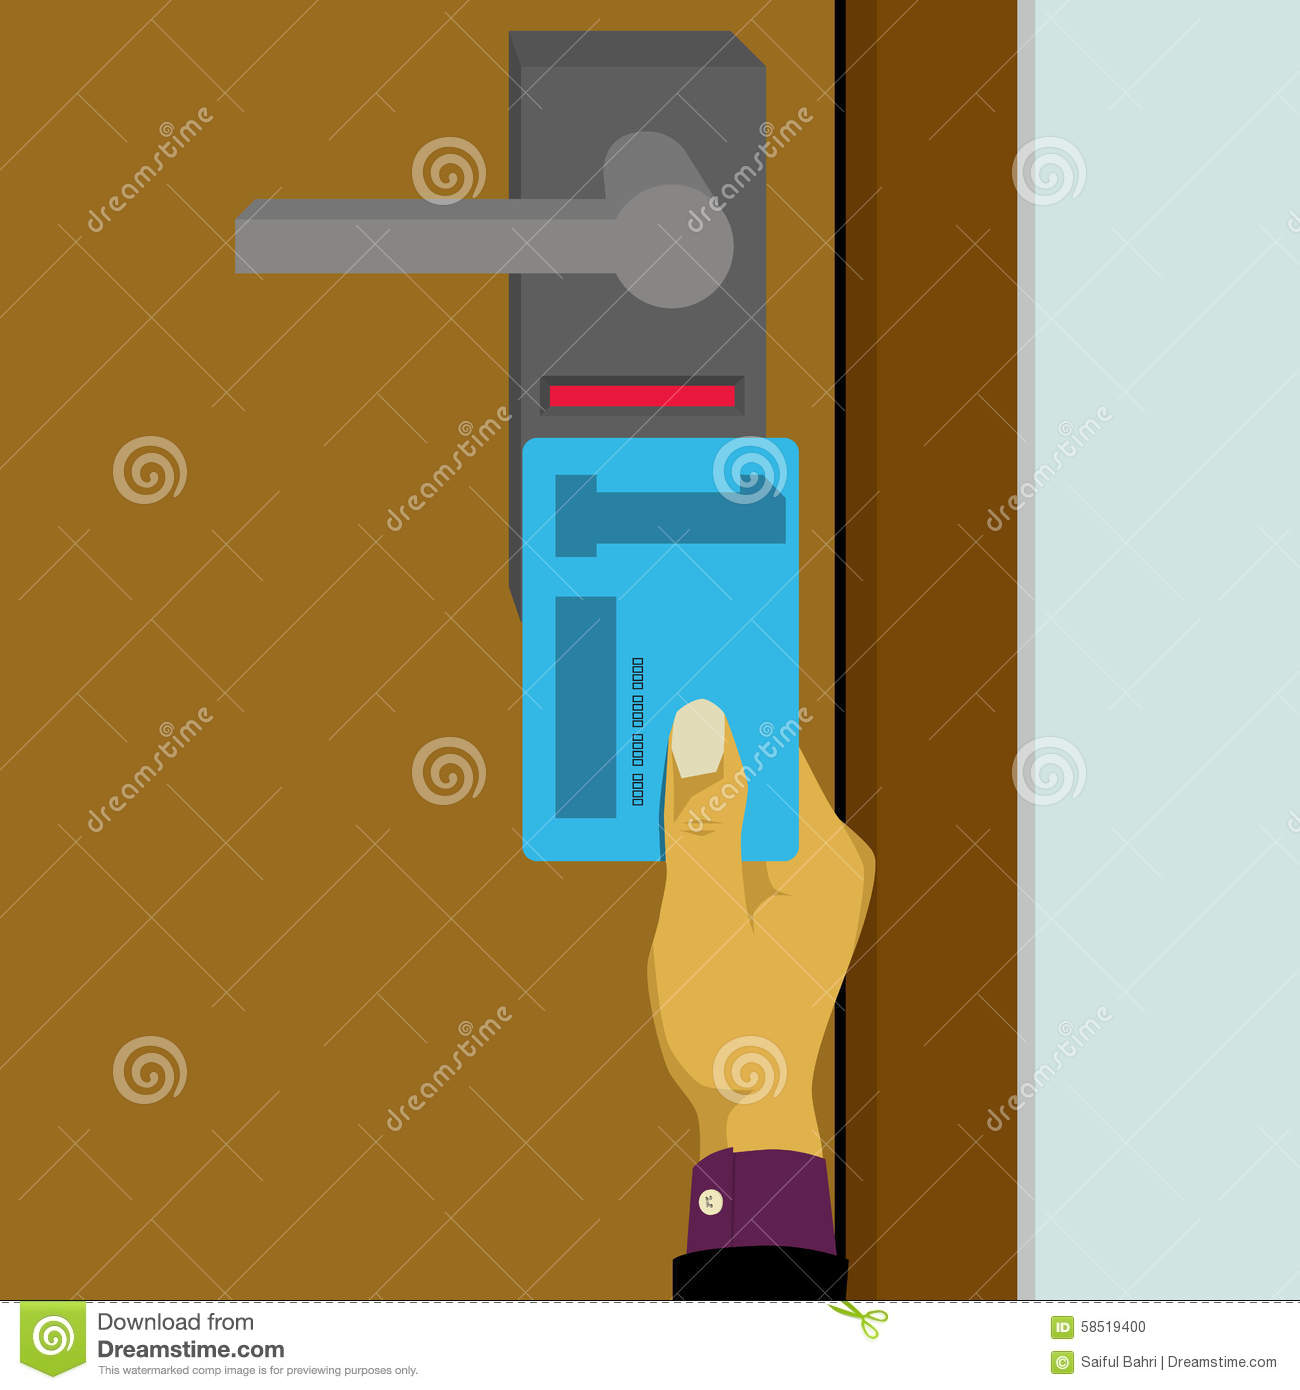 Electronic Key System Smart Key Card Lock Stock Vector